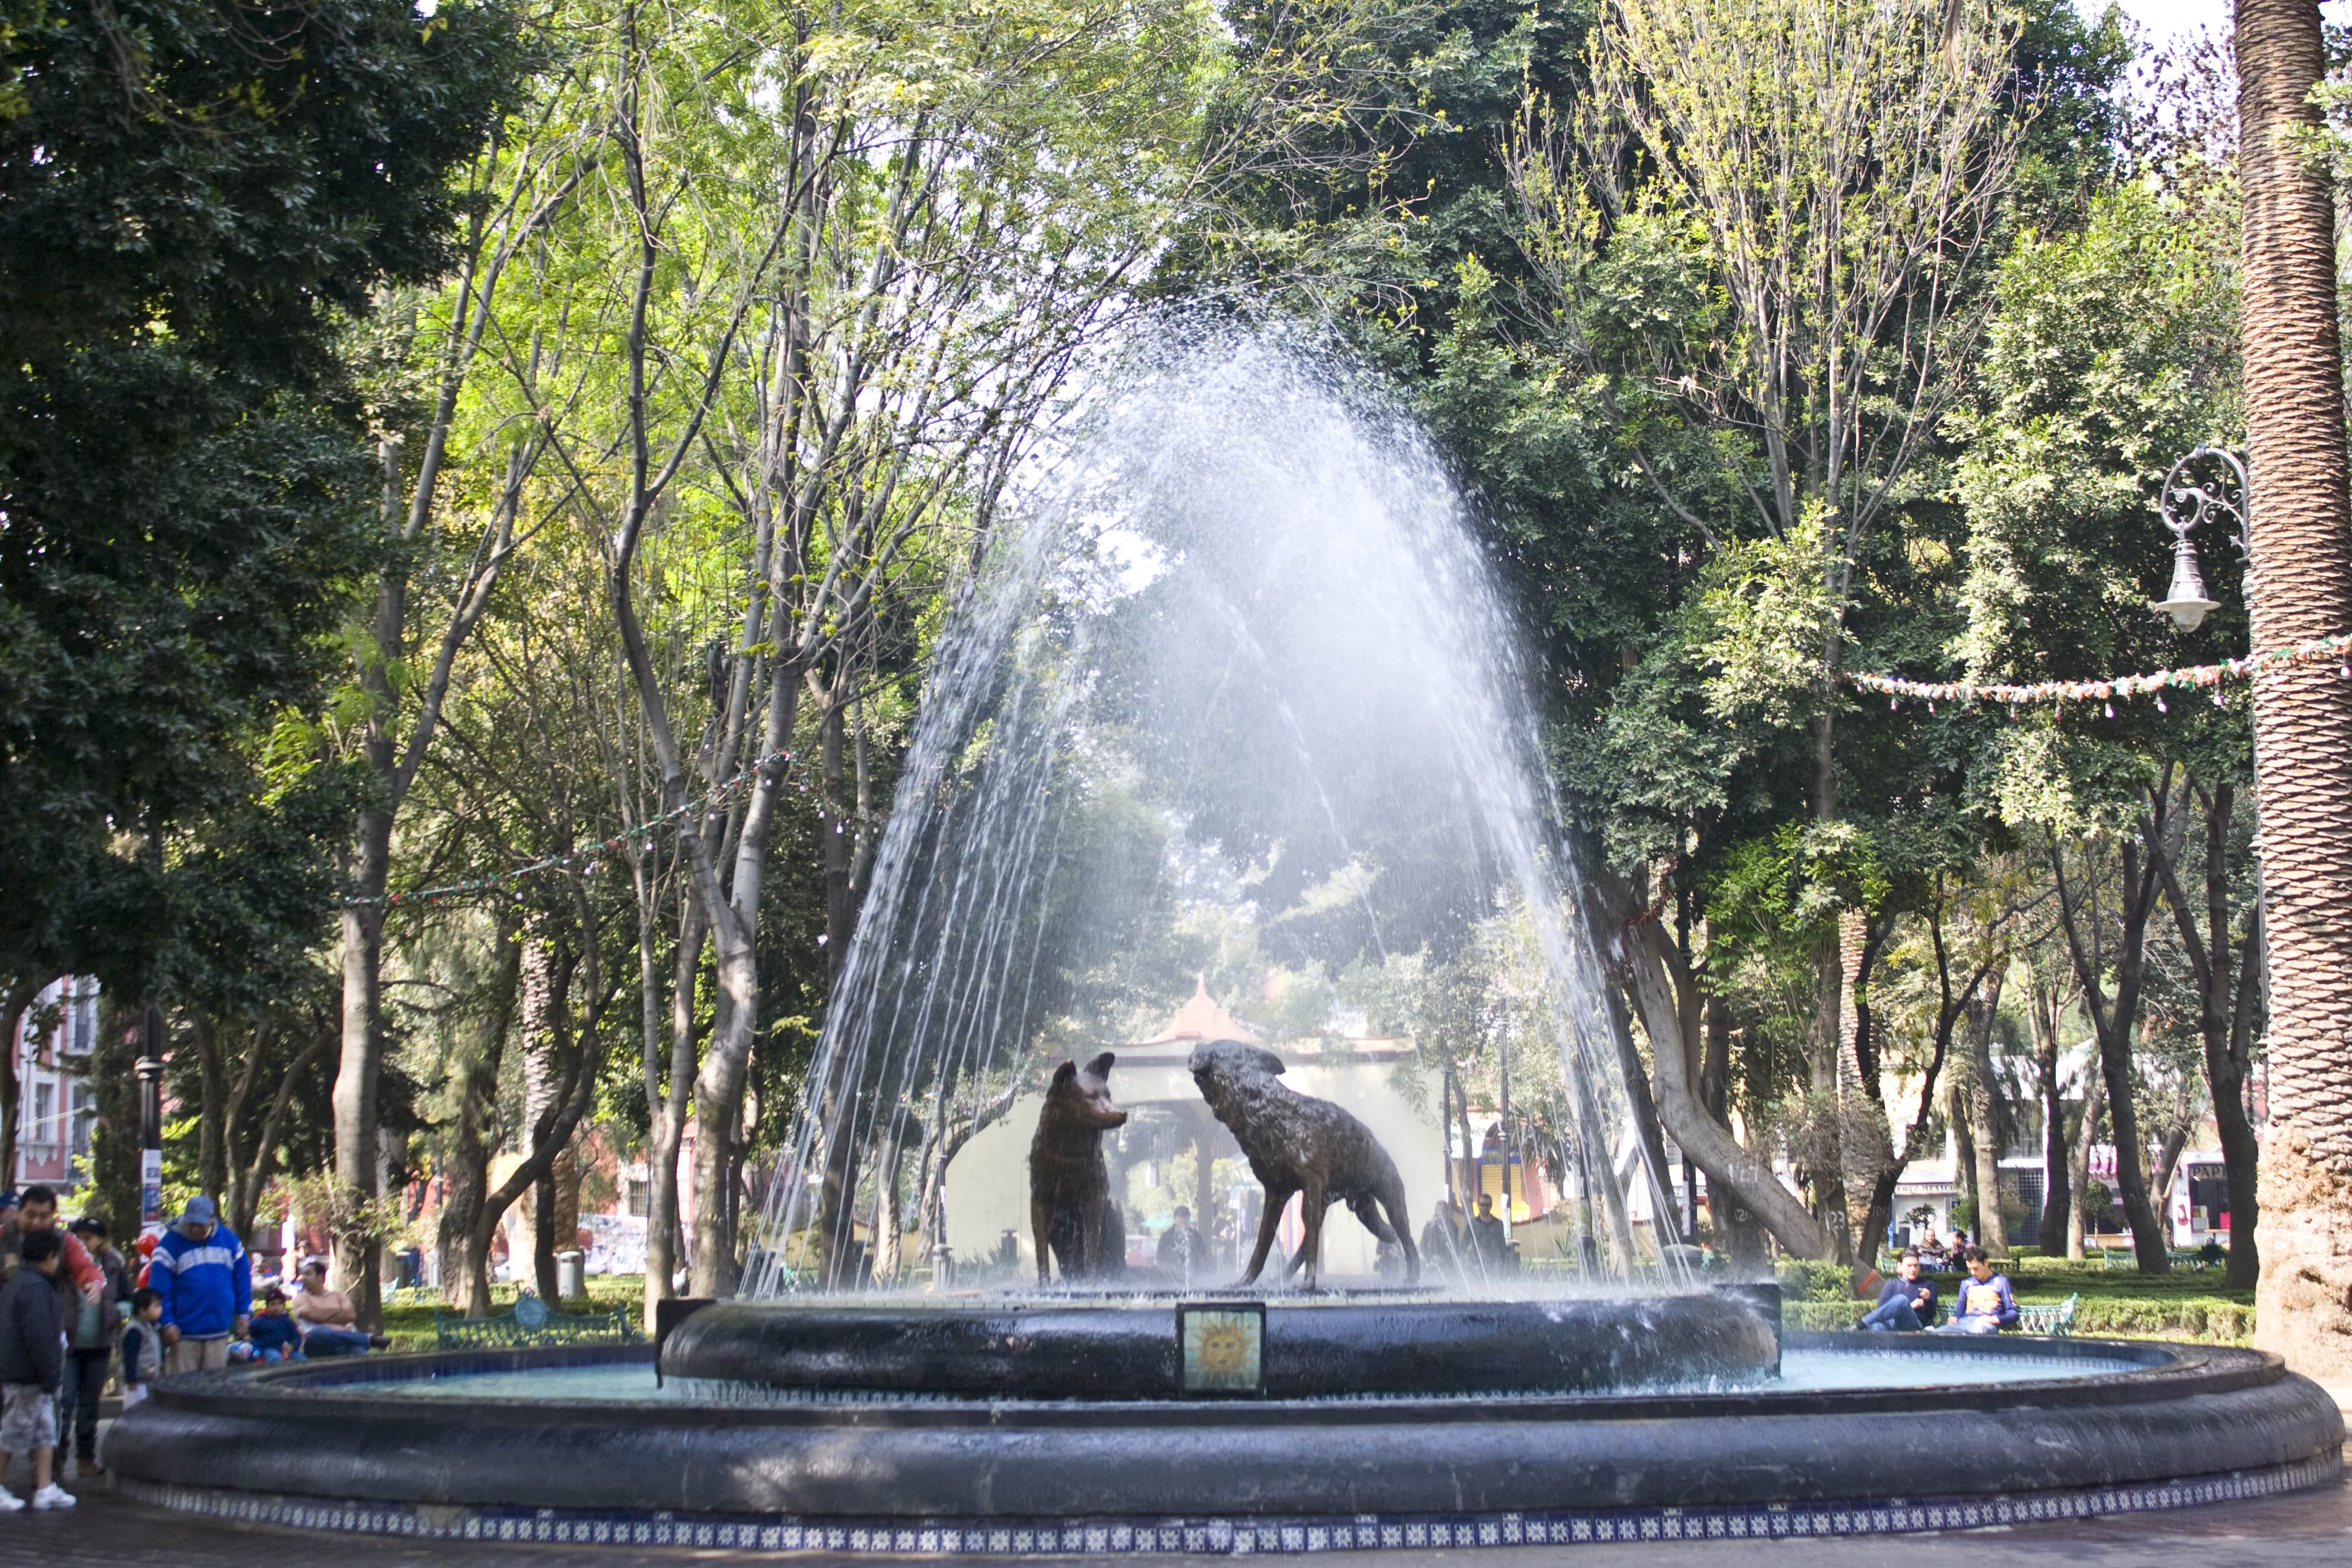 TripAdvisor reviews of Mexico City highlight Coyoacan and Museo Frida Kahlo